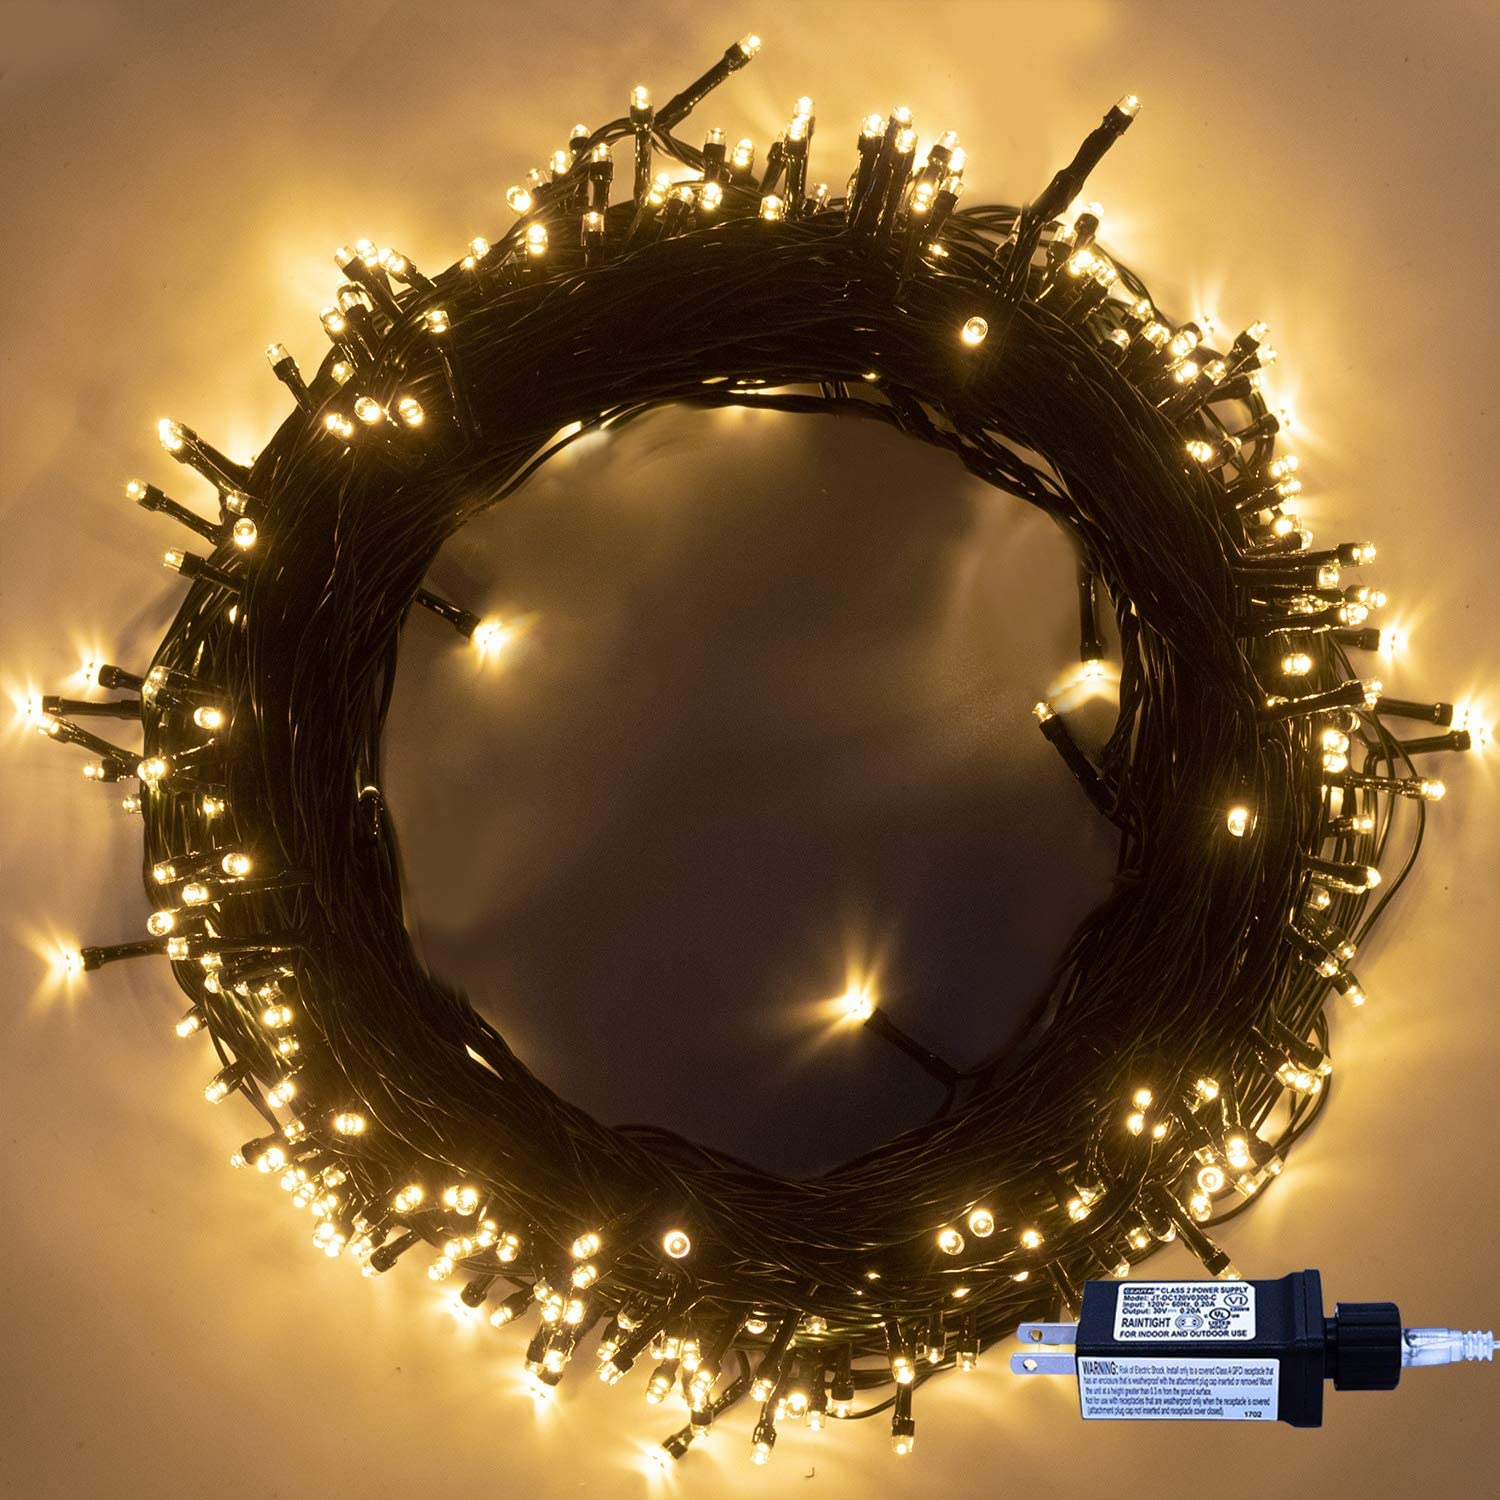 Outdoor Christmas Tree String Lights, 320 LED 35m/115ft Indoor Waterproof 8 Modes Fairy Twinkle Lights End-to-End Plug in, for Christmas Tree Garden Wedding Party Home Patio Lawn Decoration-Warm White